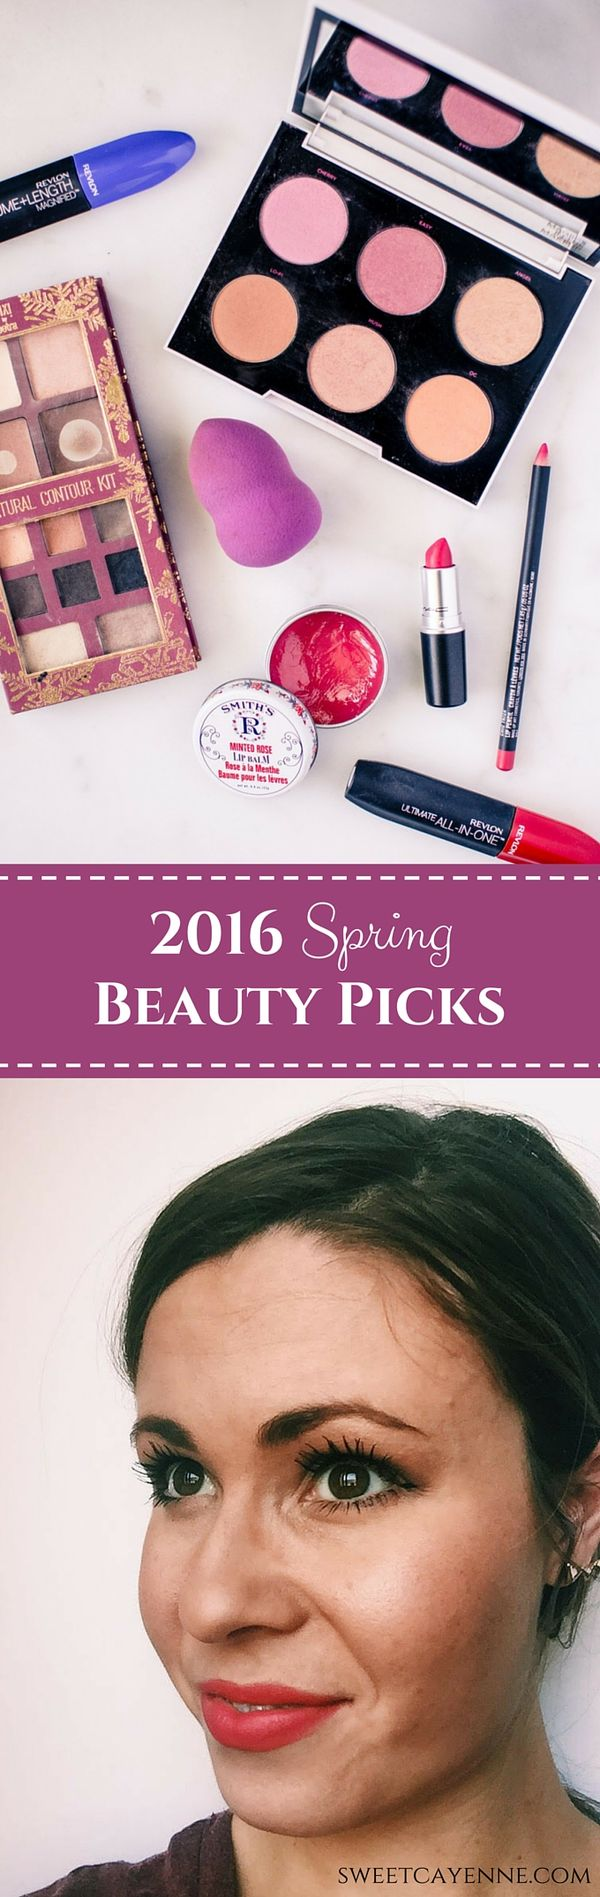 Sharing my favorite spring beauty products and creating a fresh look for the season! Includes my review of items from Urban Decay, MAC, Revlon, Pixi and more! Makeup collection post.